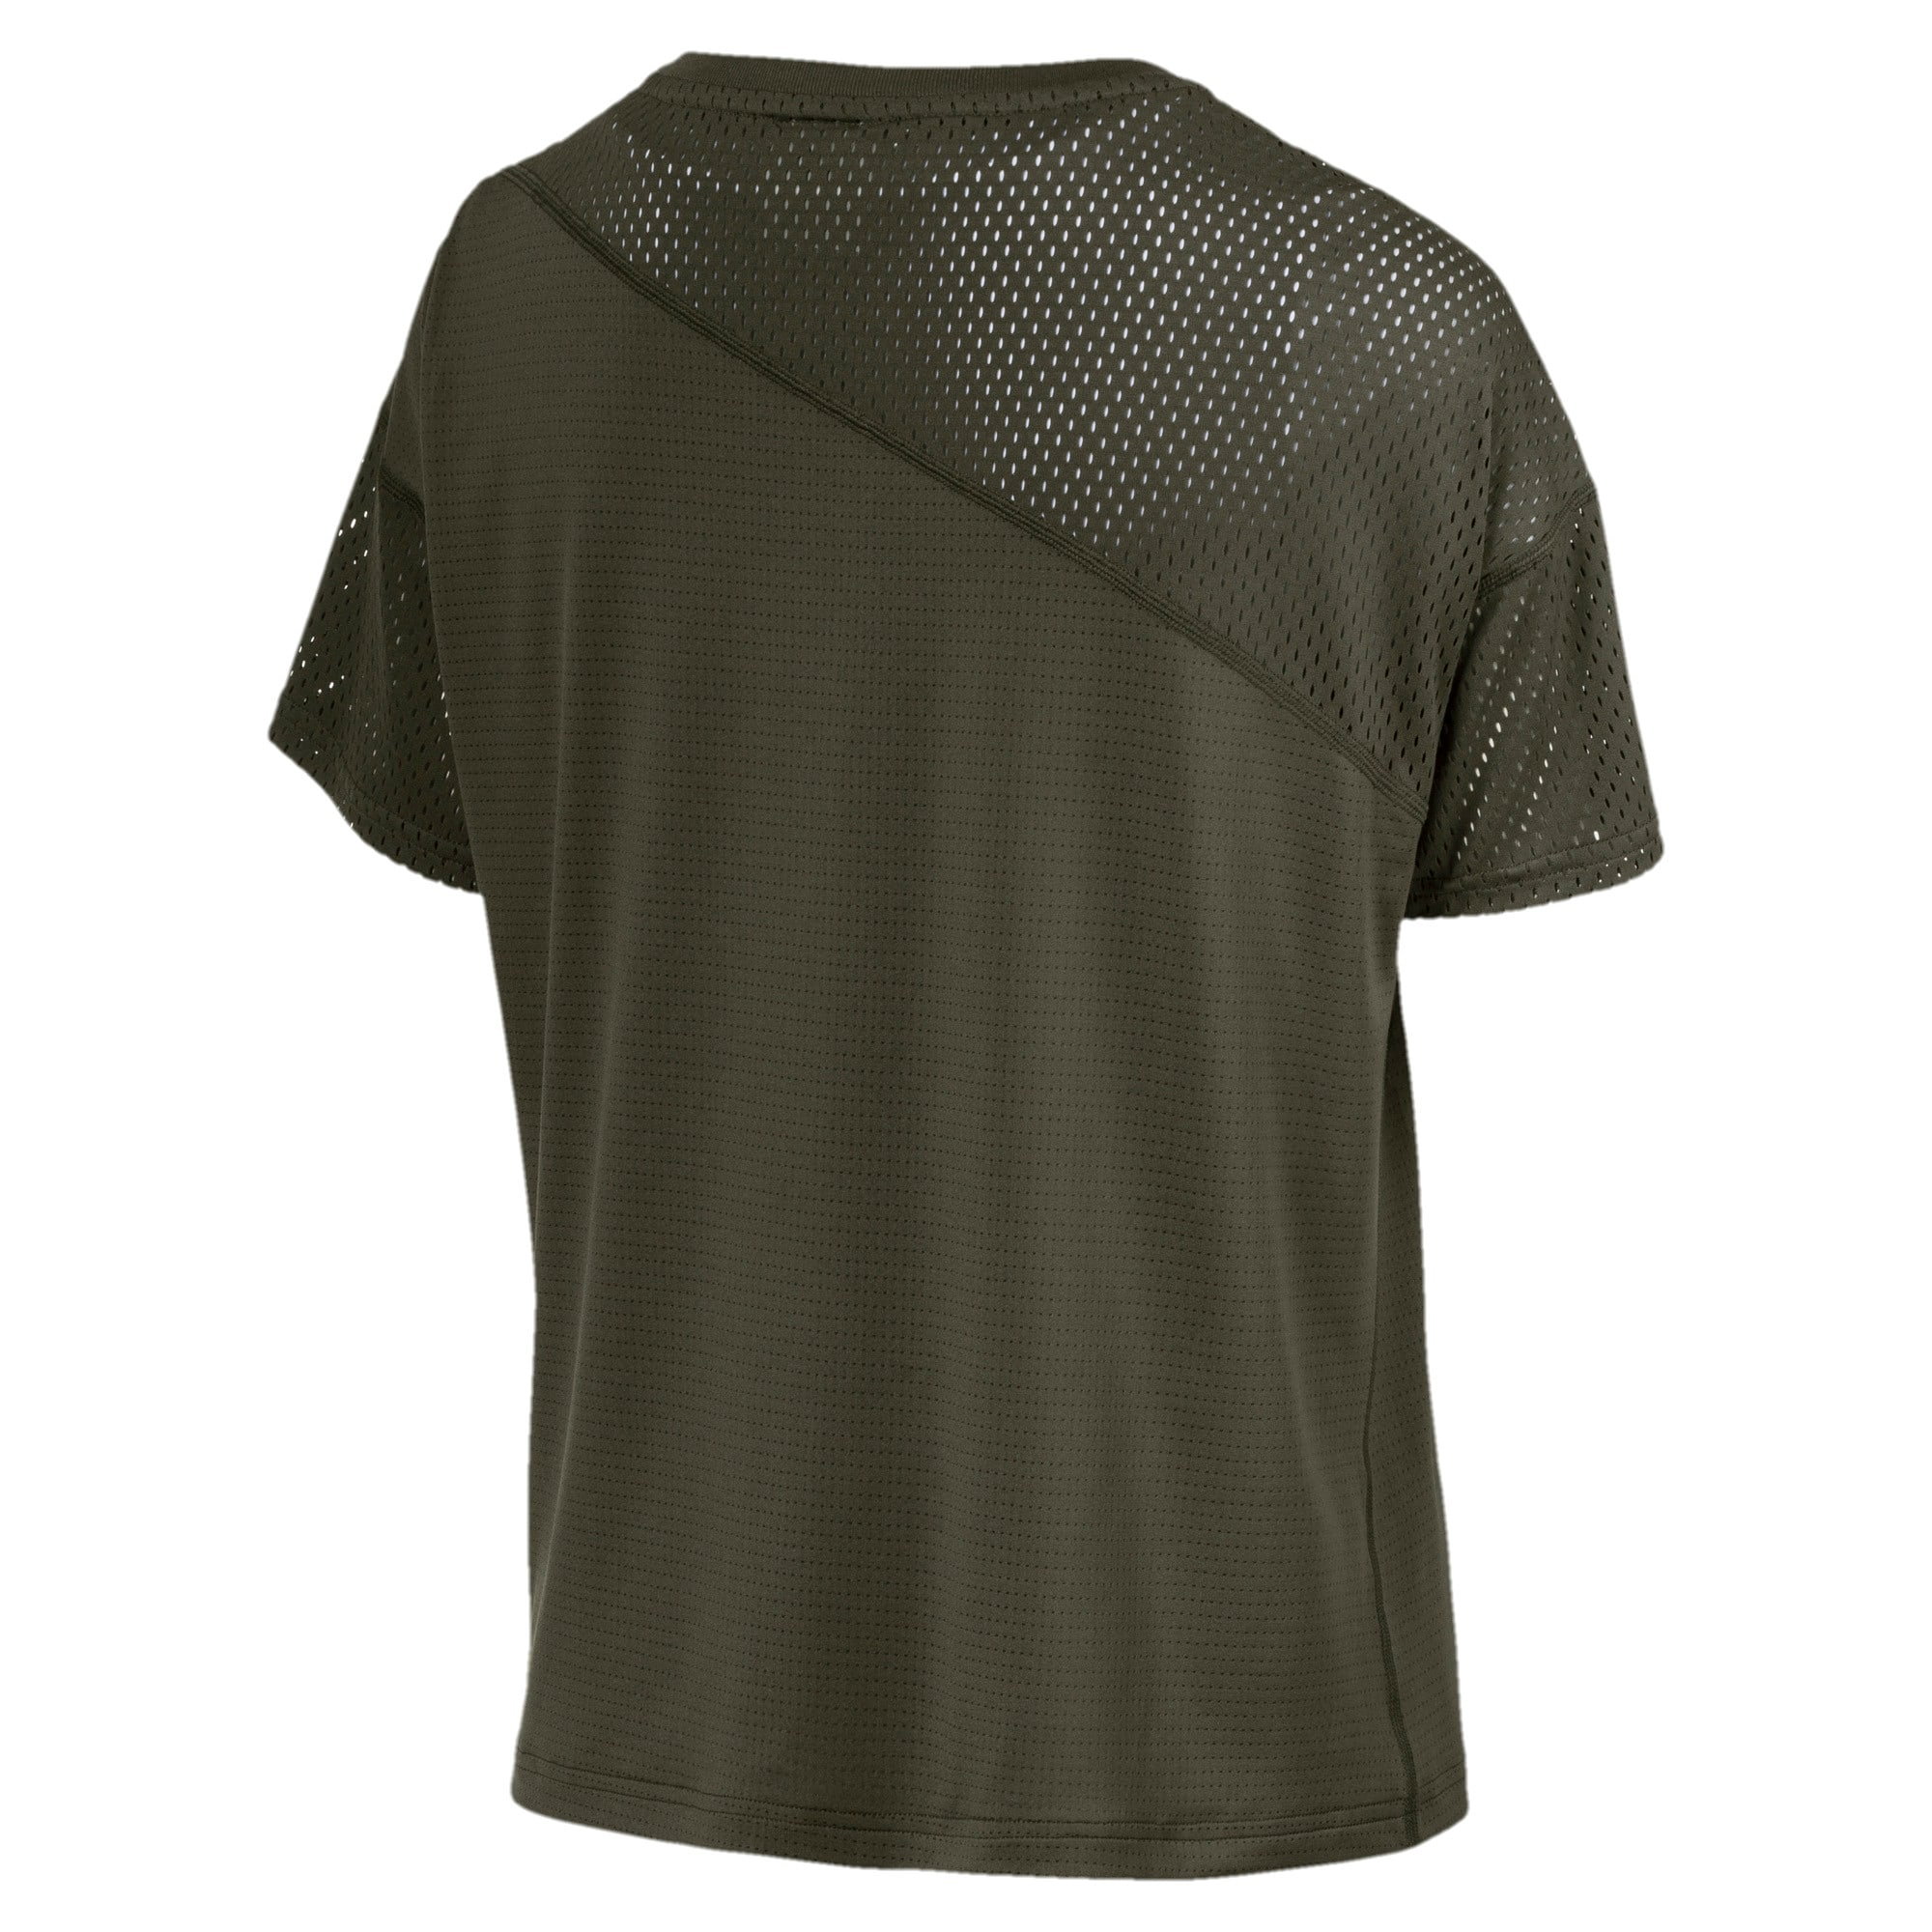 Thumbnail 5 of A.C.E. Mesh Blocked Women's Training Top, Forest Night, medium-IND